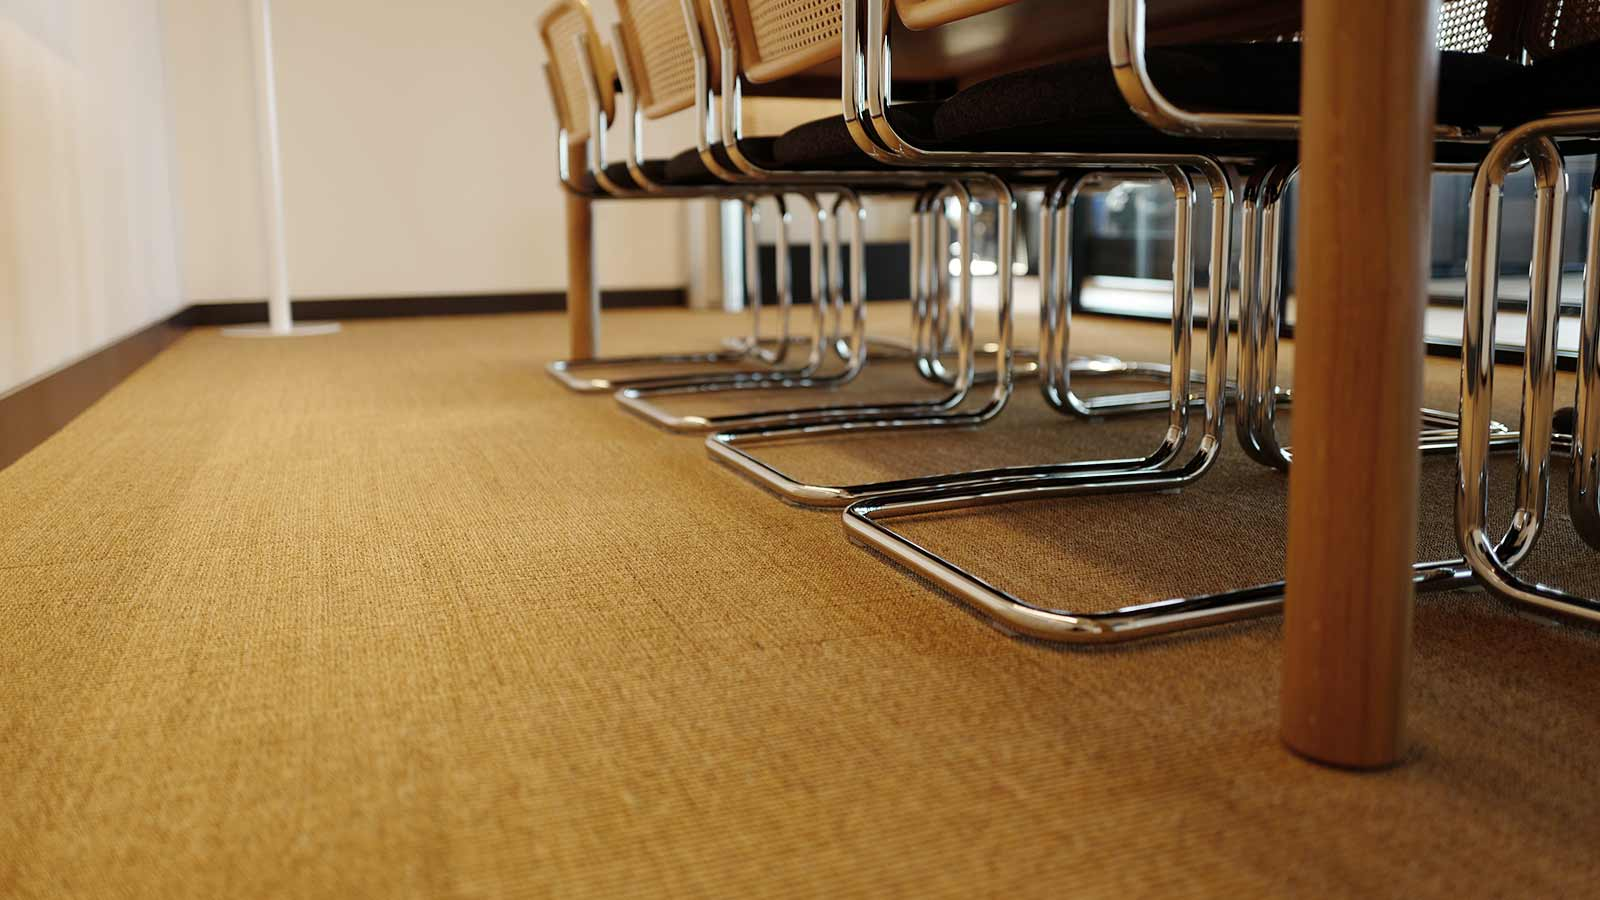 sisal tiles in conference room